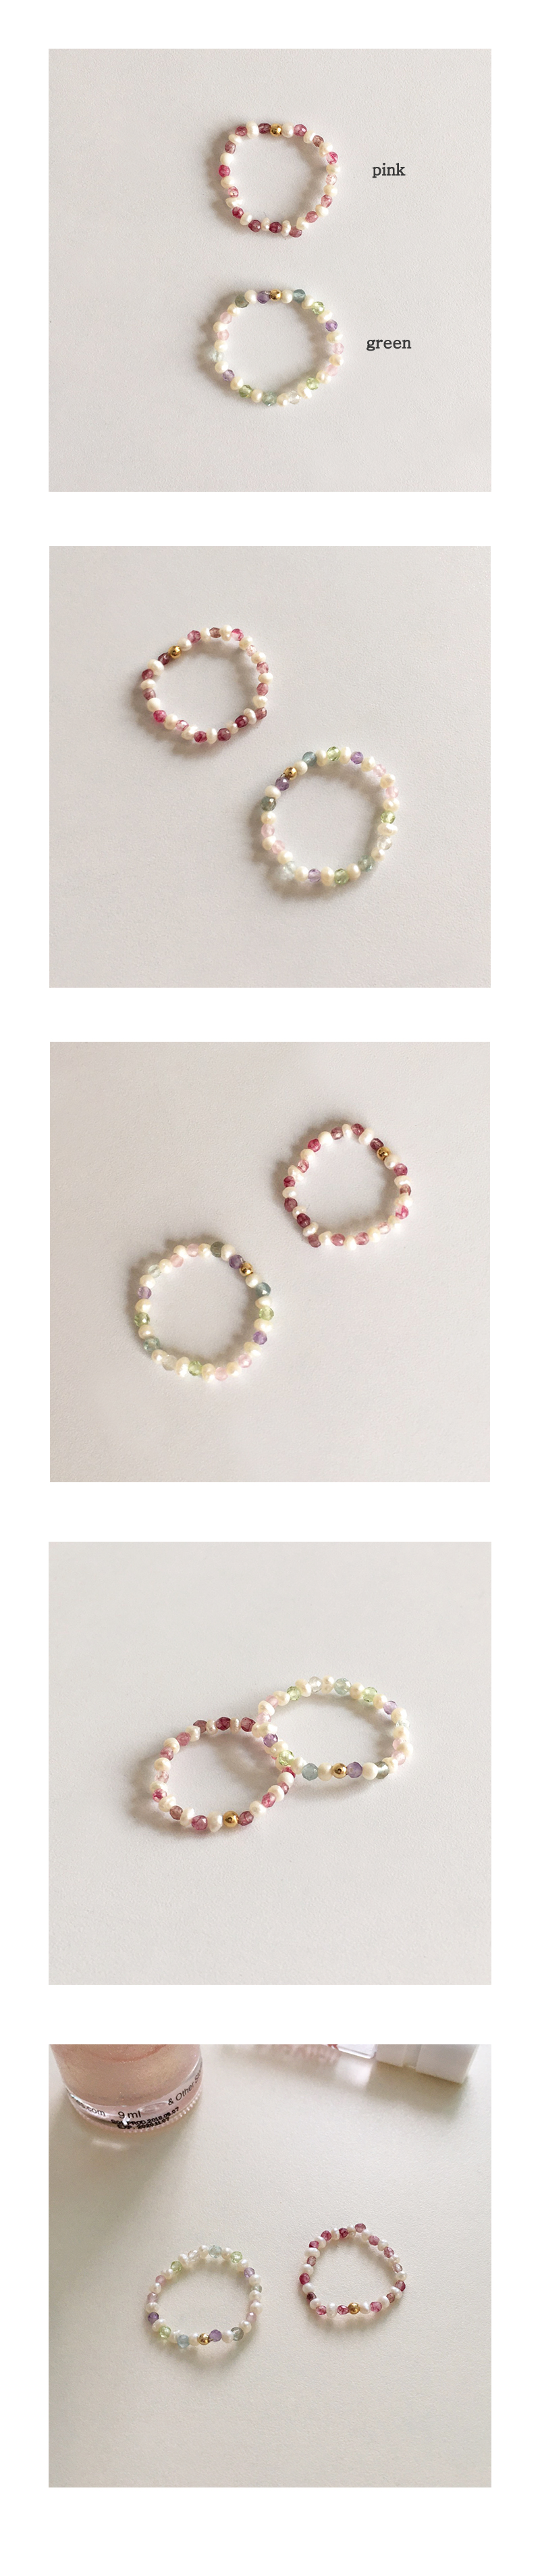 roller pearl ring